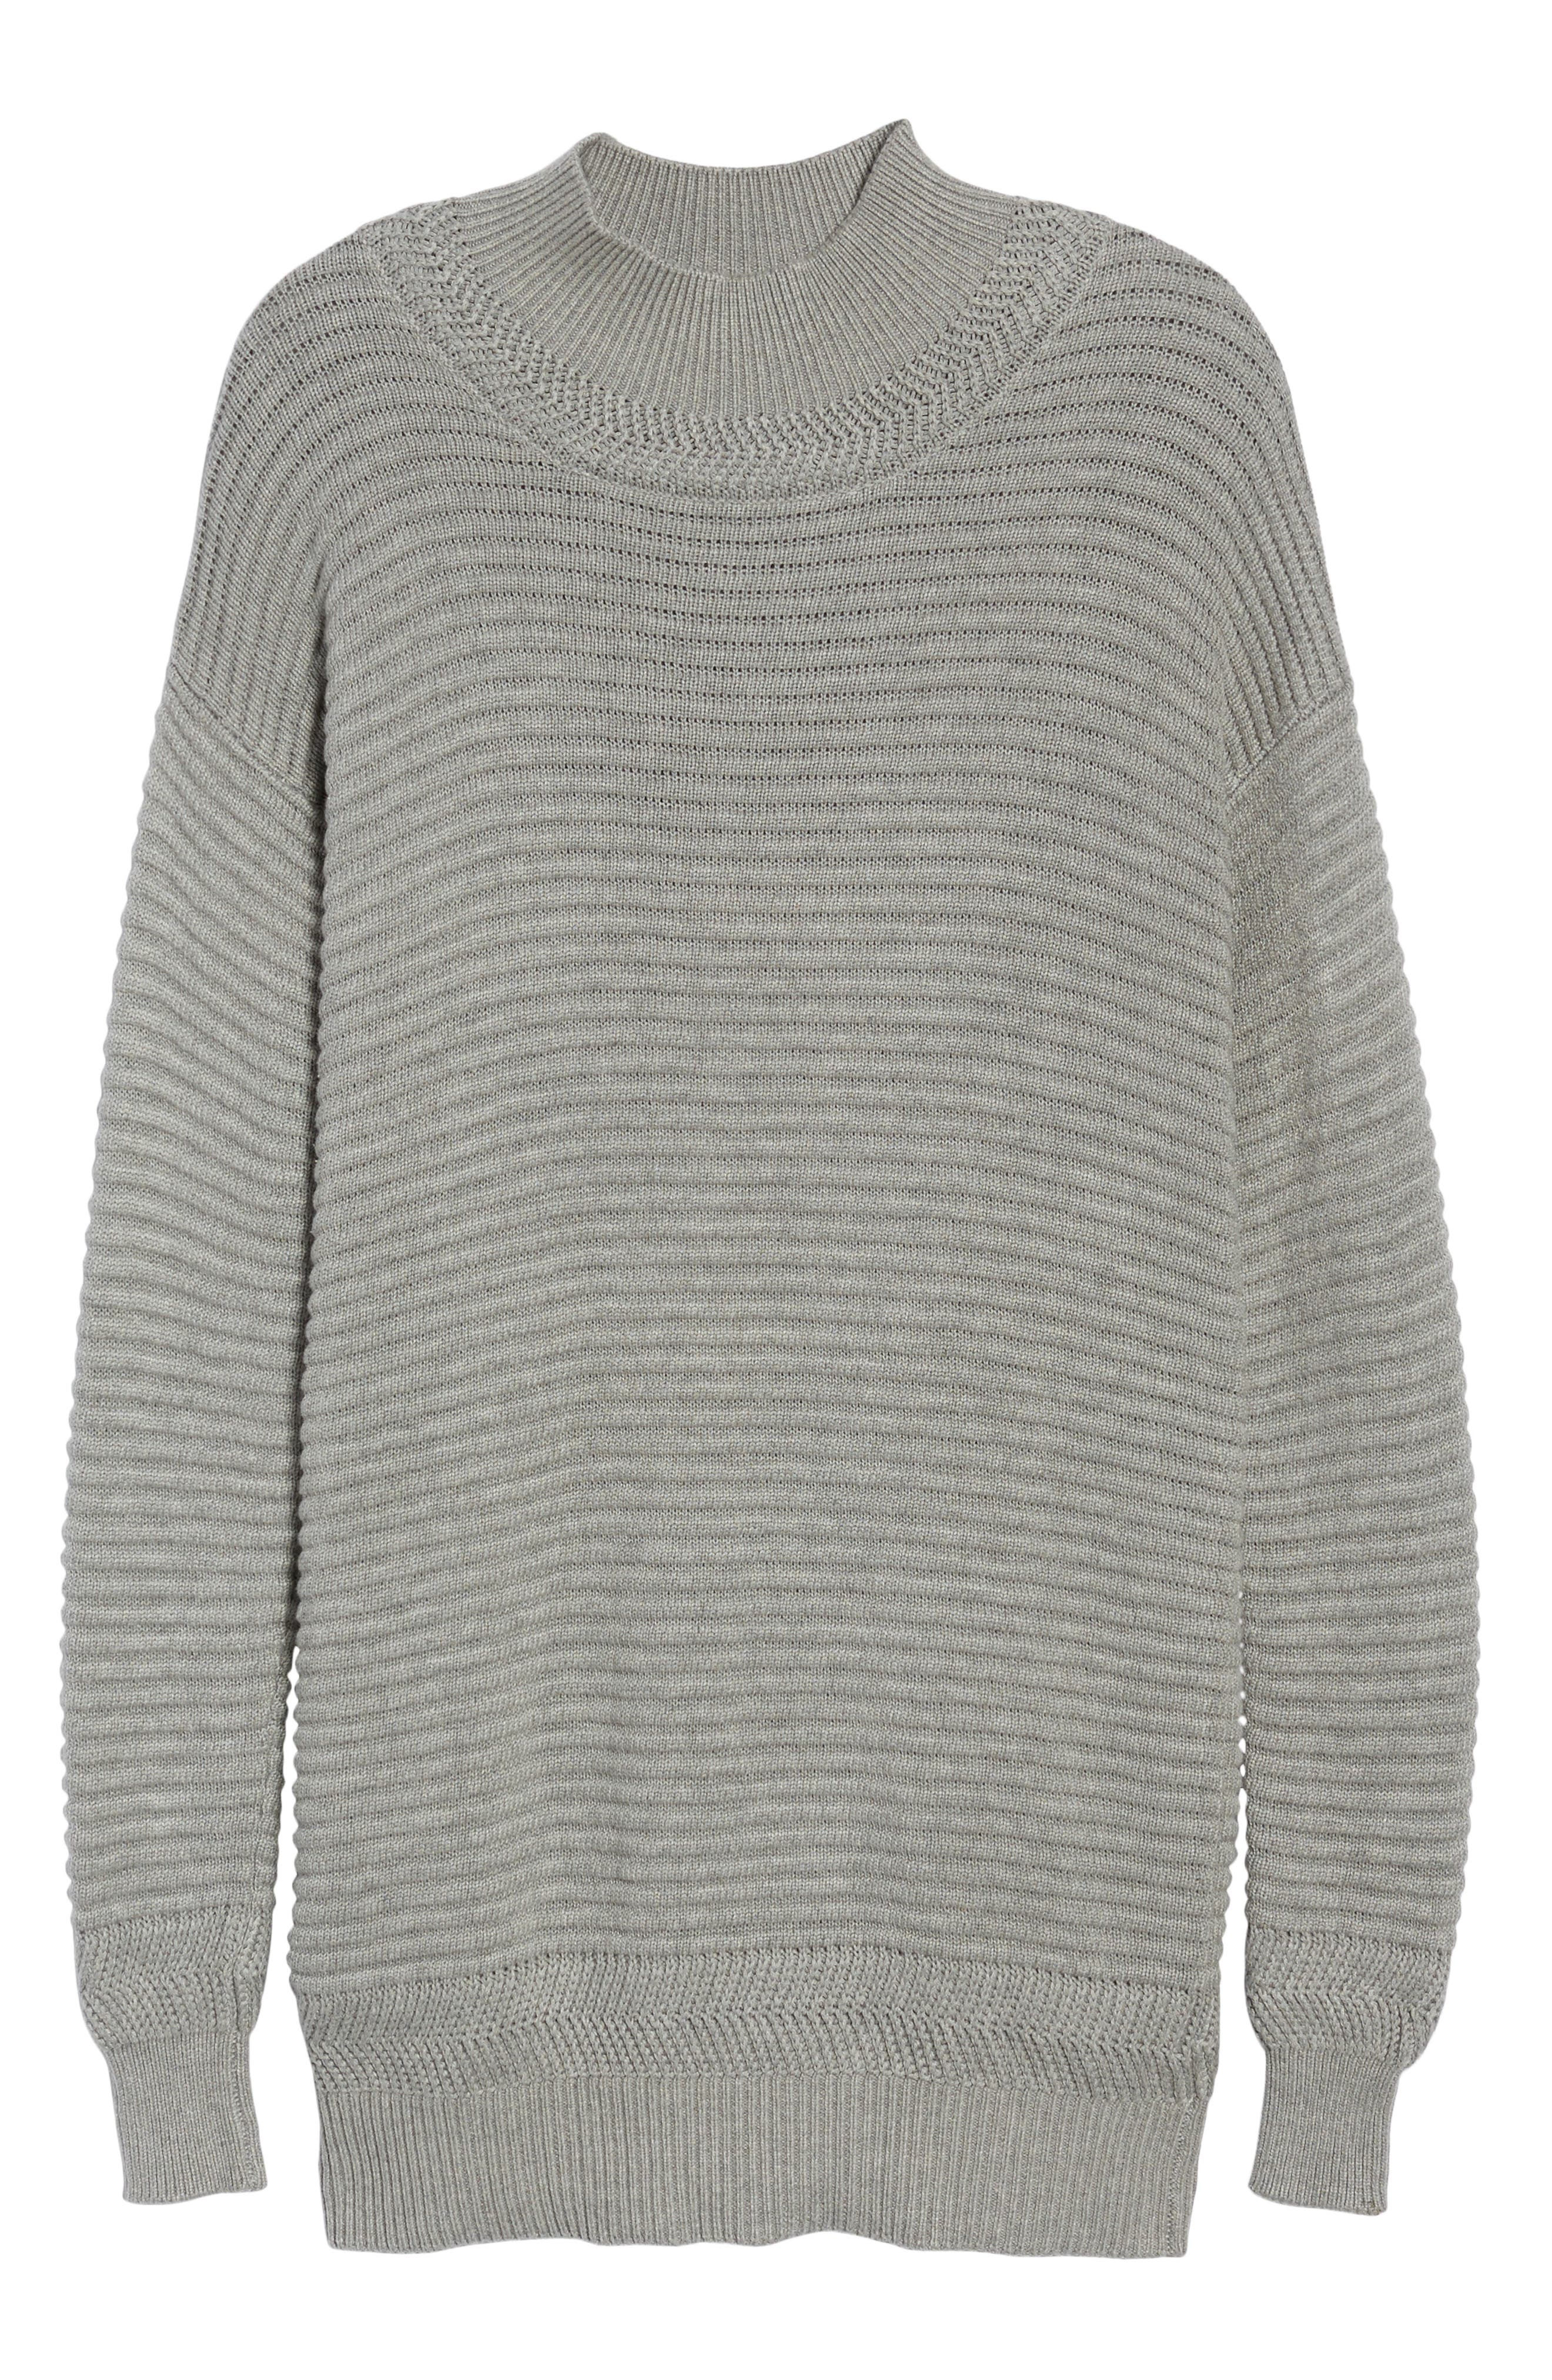 What Now Cotton Sweater,                             Alternate thumbnail 6, color,                             020